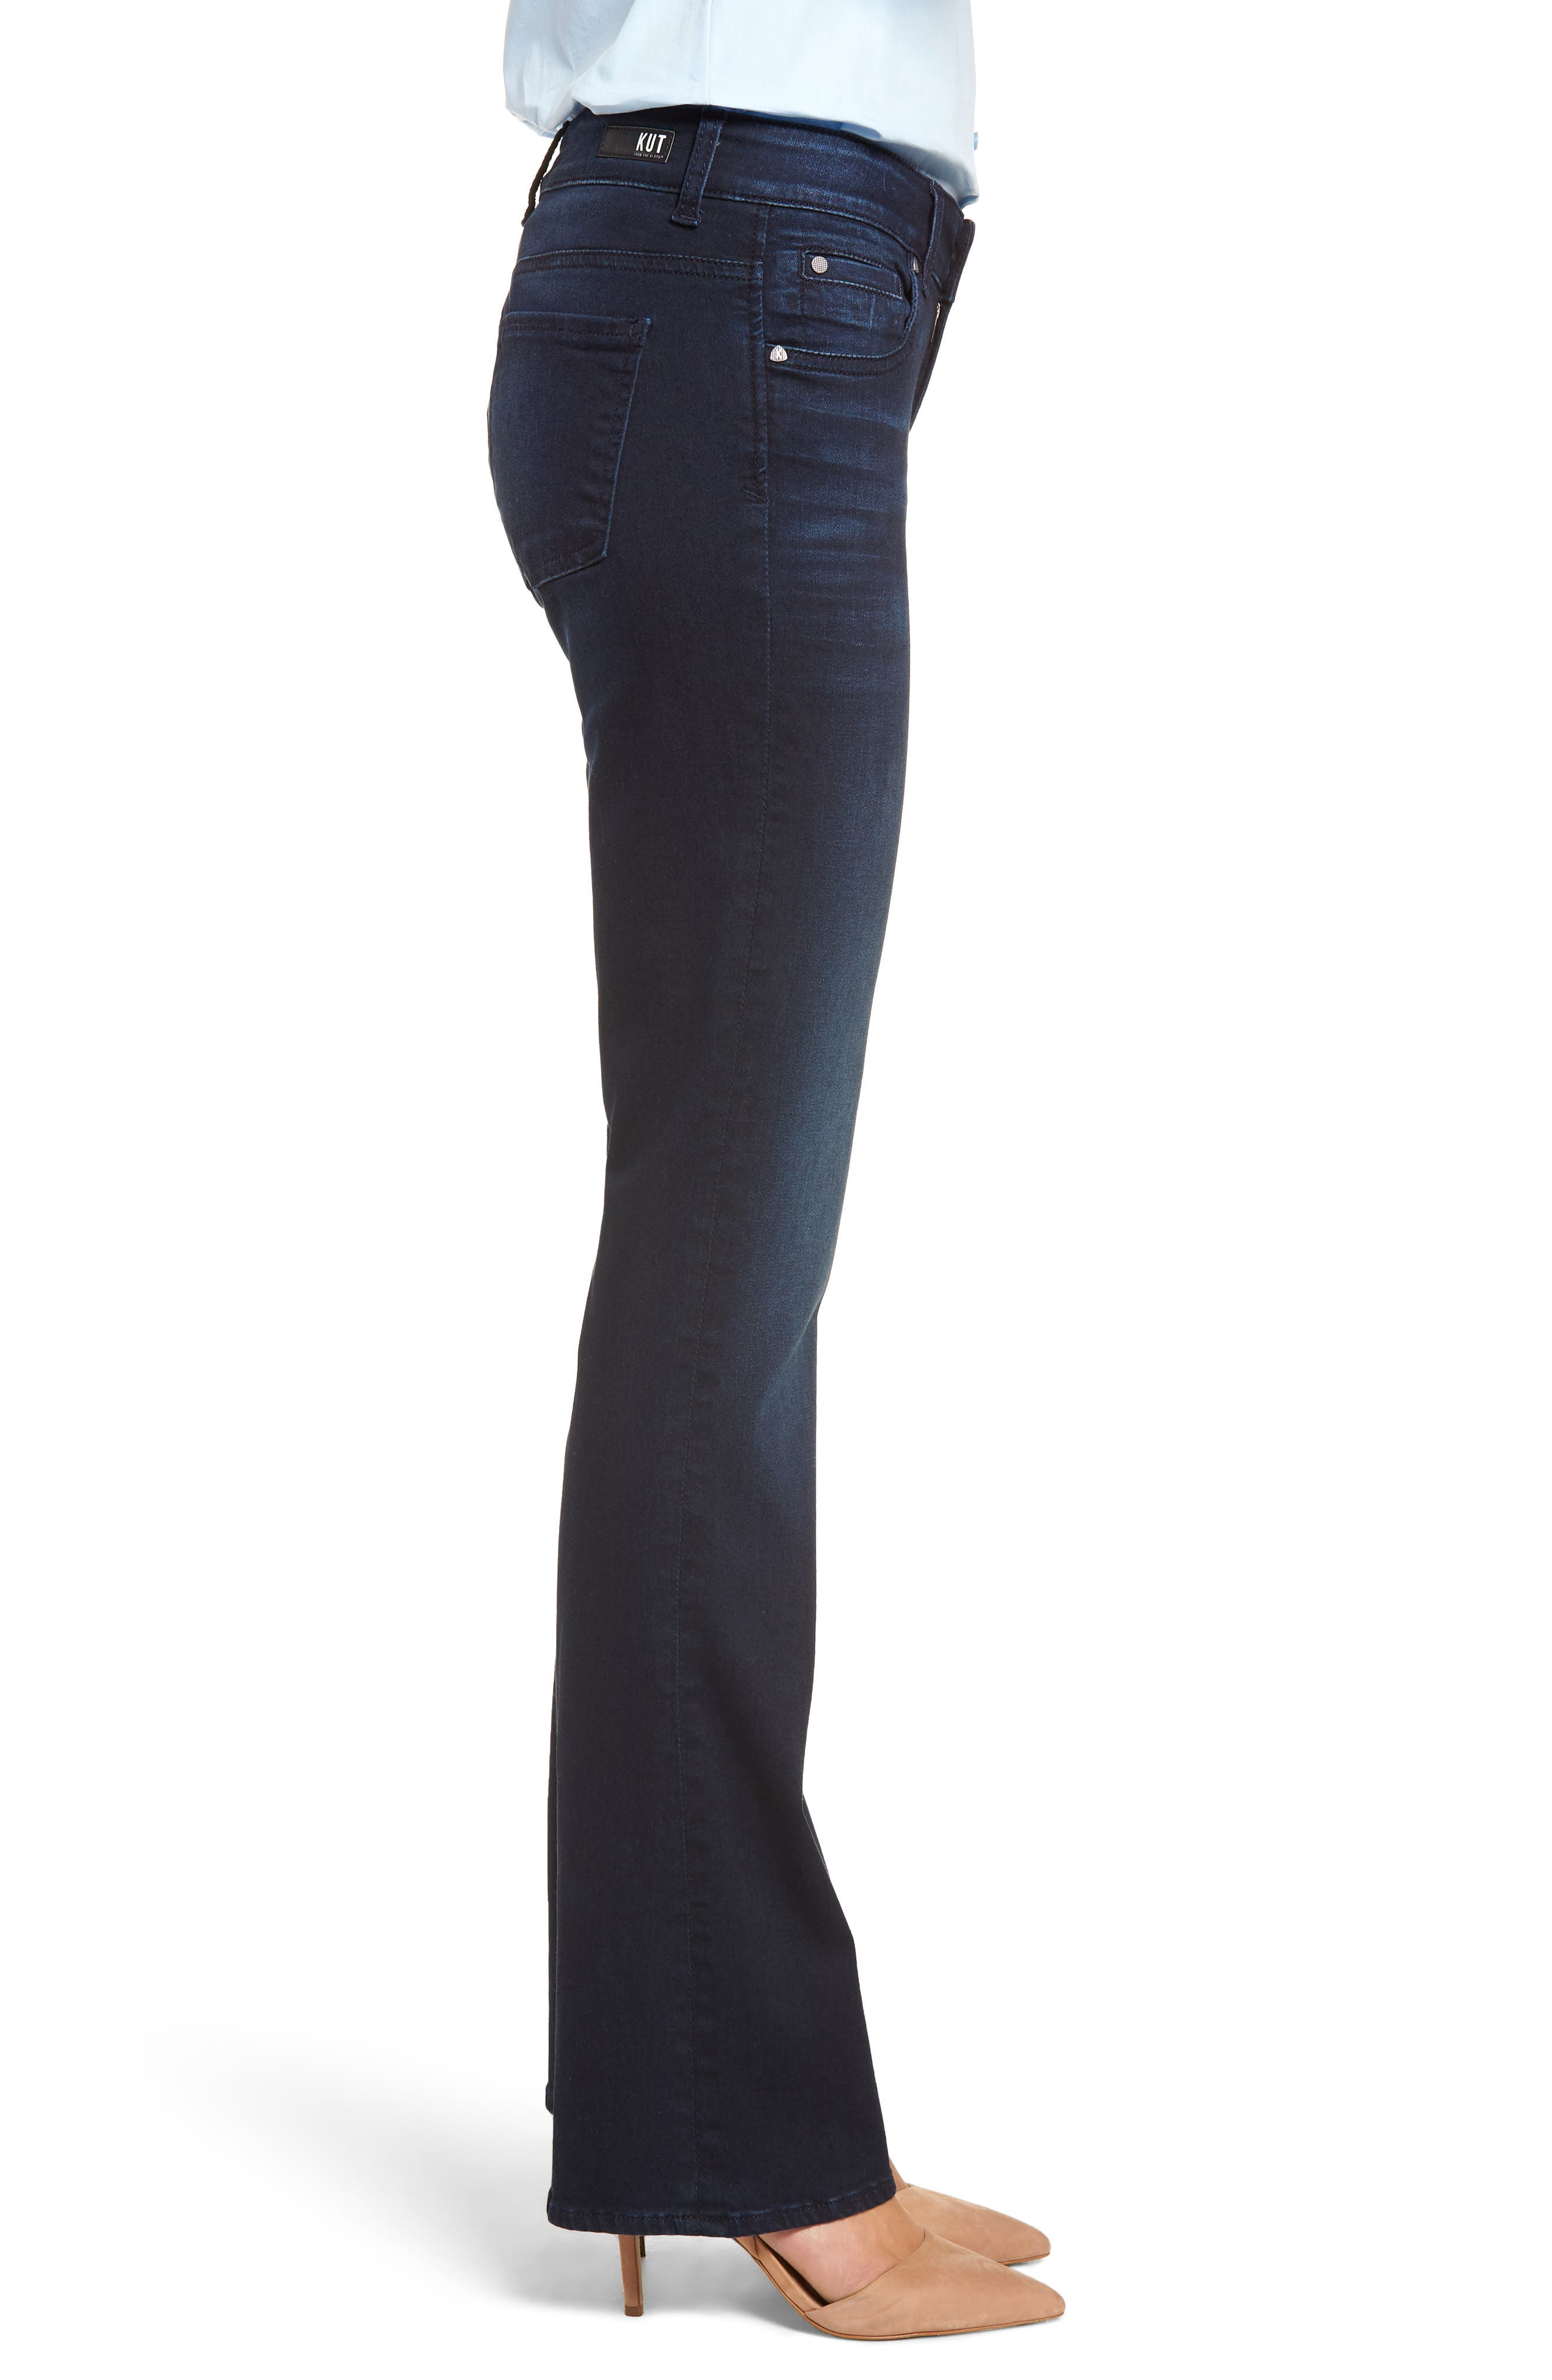 KUT FROM THE KLOTH, Natalie Stretch Bootleg Jeans, Alternate thumbnail 3, color, LIBERATING